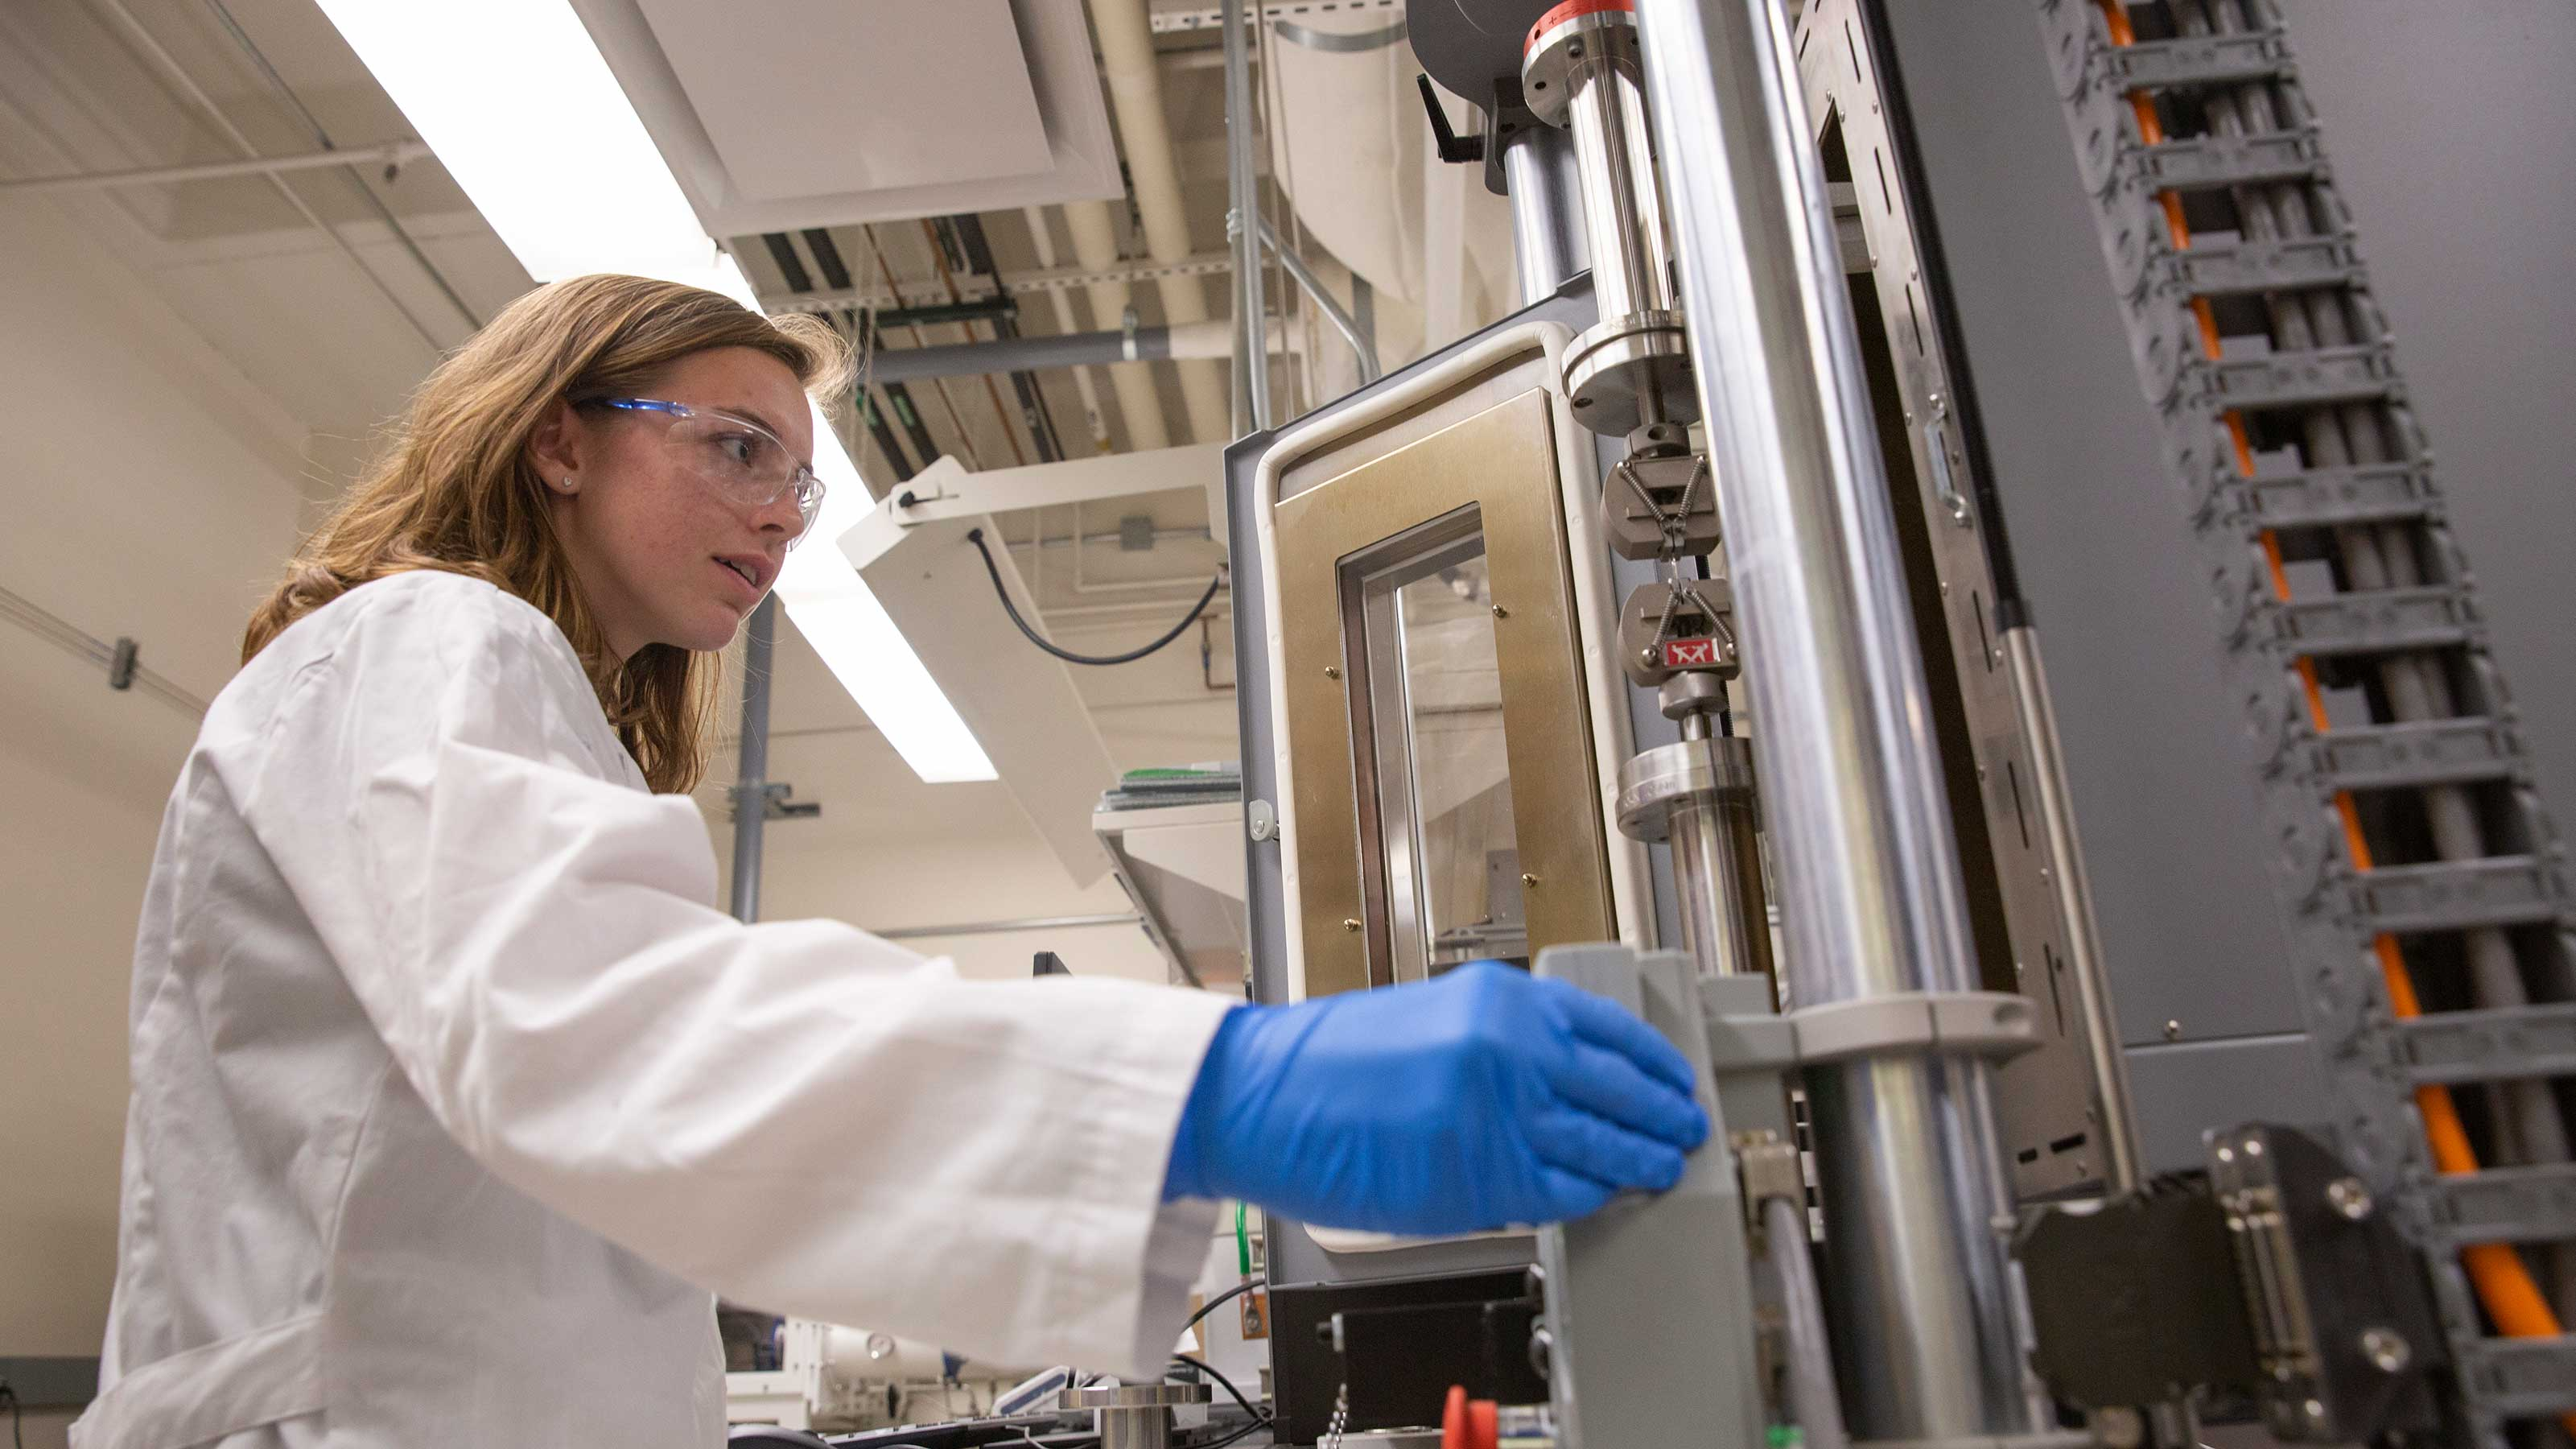 Alexis Hocken works in a lab performing mechanical testing with an Instron instrument used to investigate how much load the sample being tested can handle before breakage.